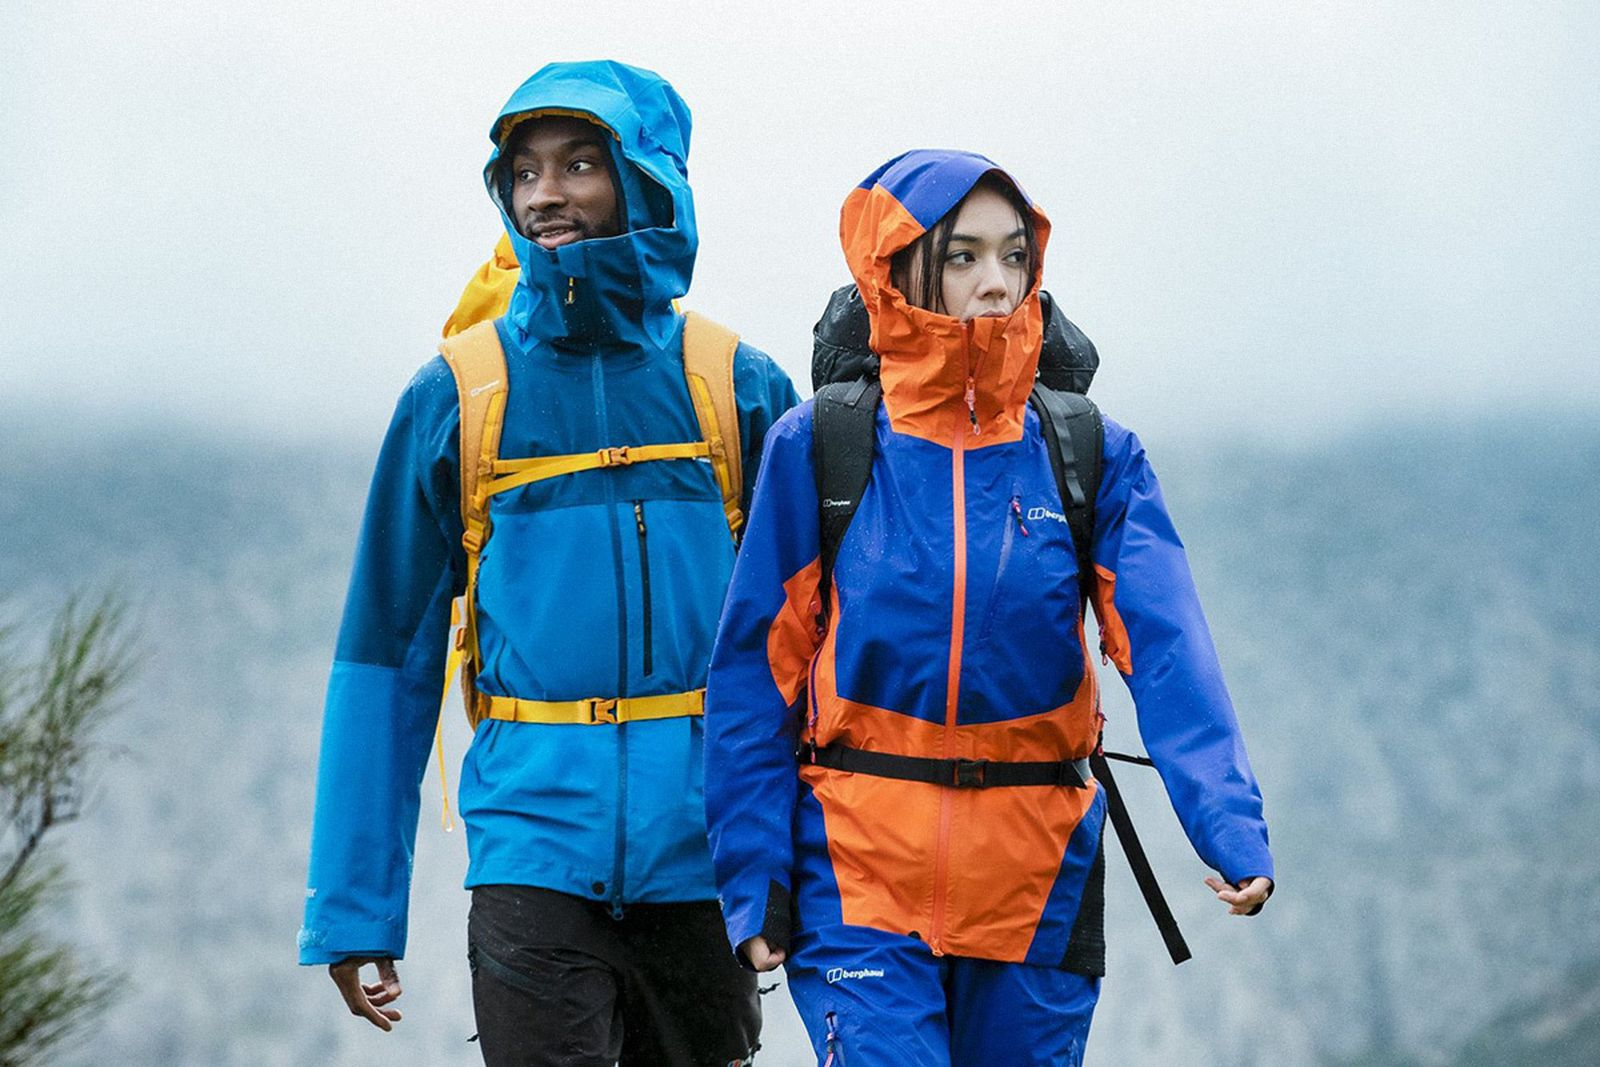 function-over-fashion-every-anti-fashion-outdoors-brand-you-need-to-know-main